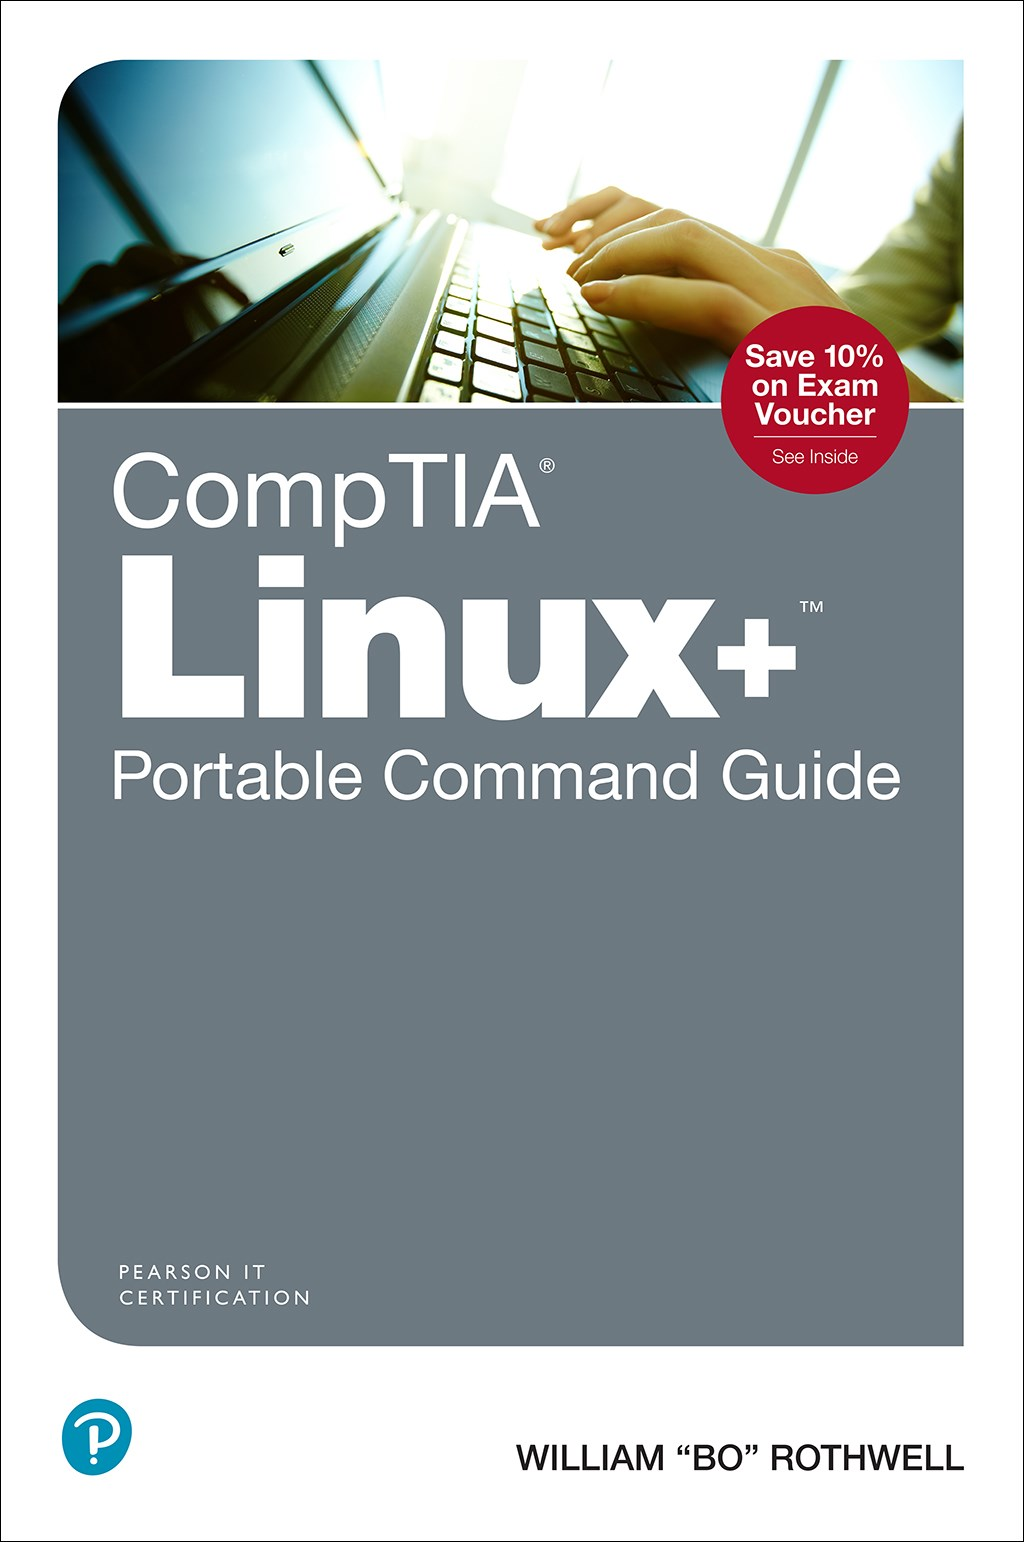 CompTIA Linux+ Portable Command Guide: All the commands for the CompTIA XK0-004 exam in one compact, portable resource, 2nd Edition